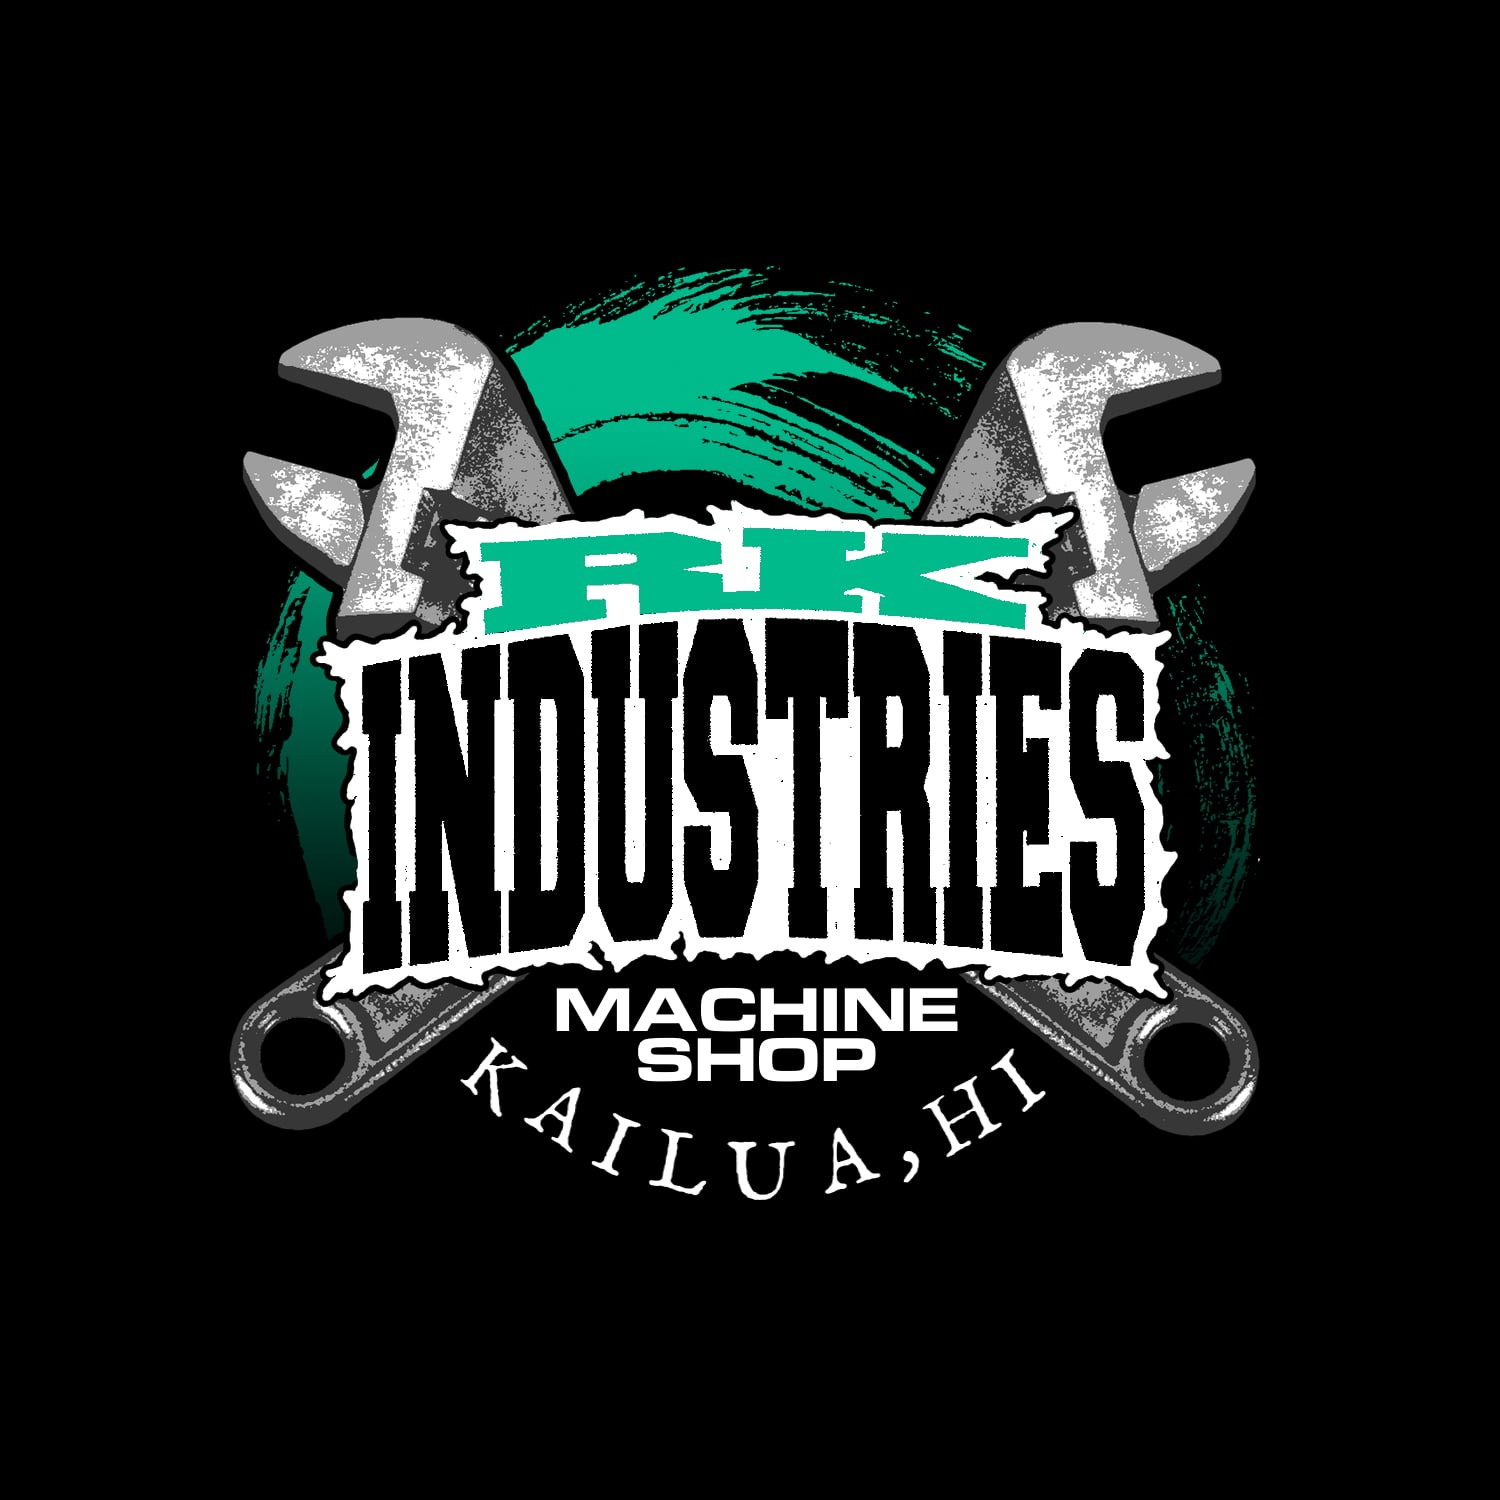 Welding services from RK Industries in Kailua, HI.